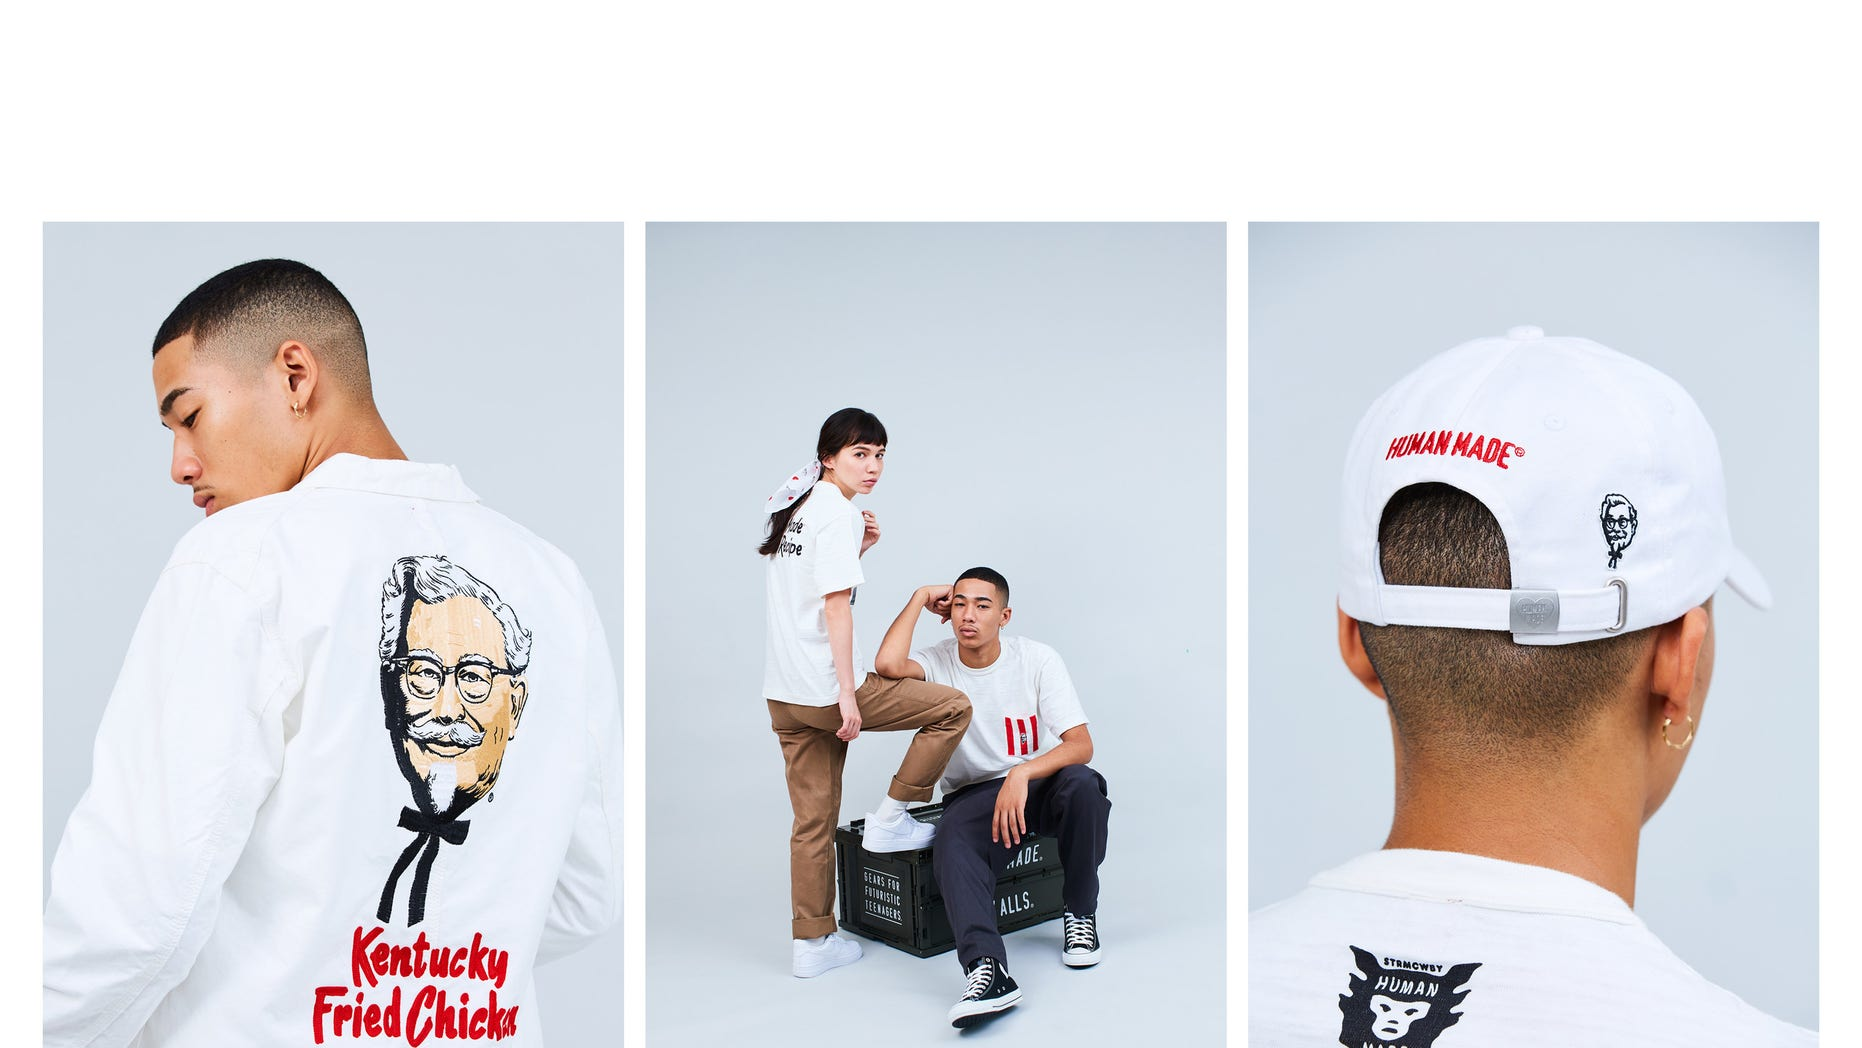 Fans will be able to purchase Human Made x KFC Capsule Collection items at a pop-up shopping experience on Friday, Nov. 16, at a KFC restaurant in Manhattan. (PRNewsfoto/KFC)